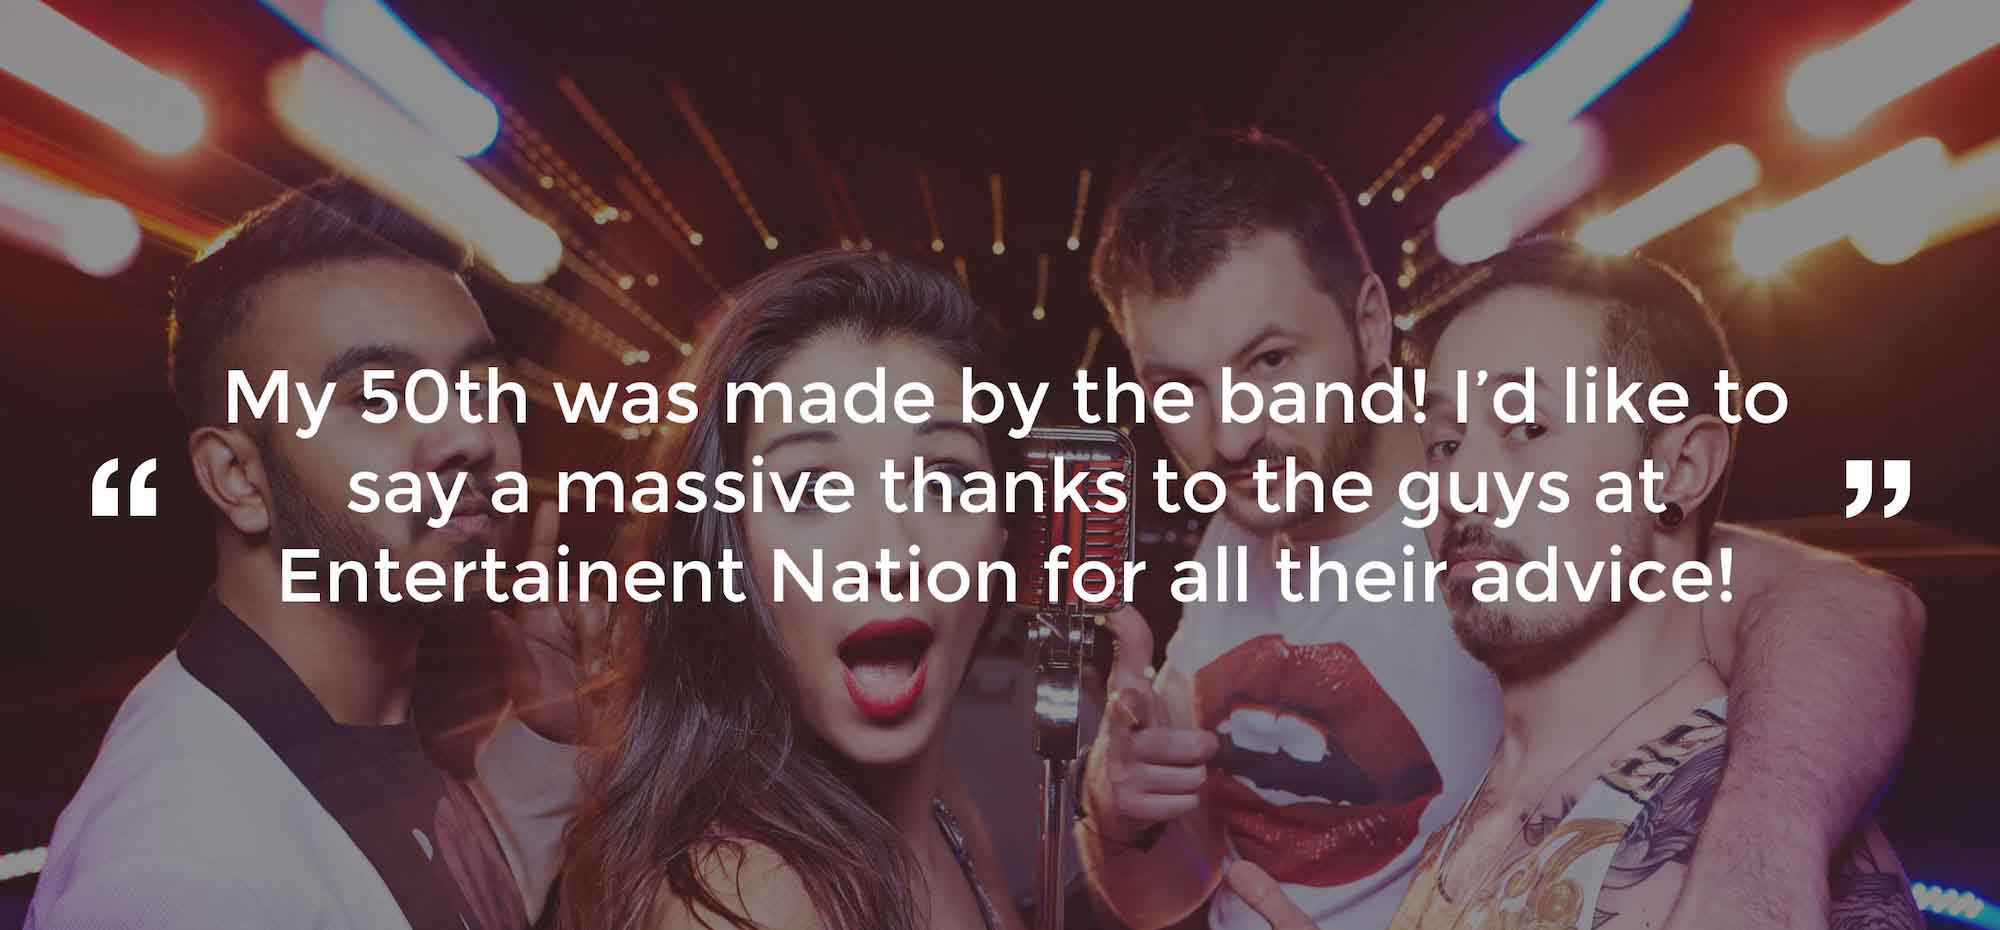 Client Review of a Party Band Kent